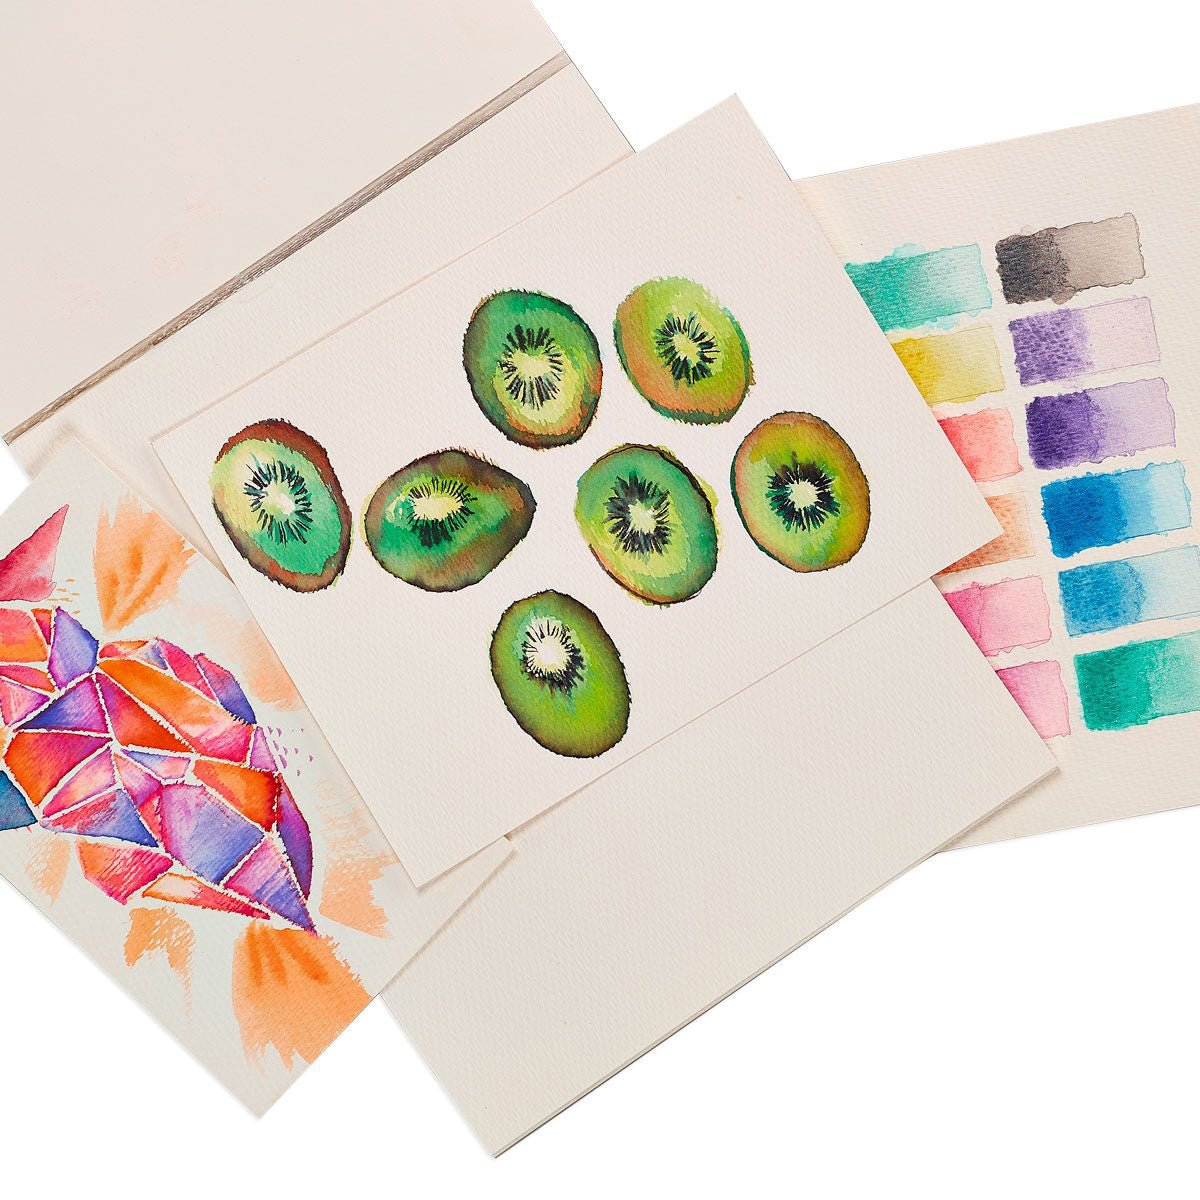 Chroma Blends Watercolor Pad | Getty Store